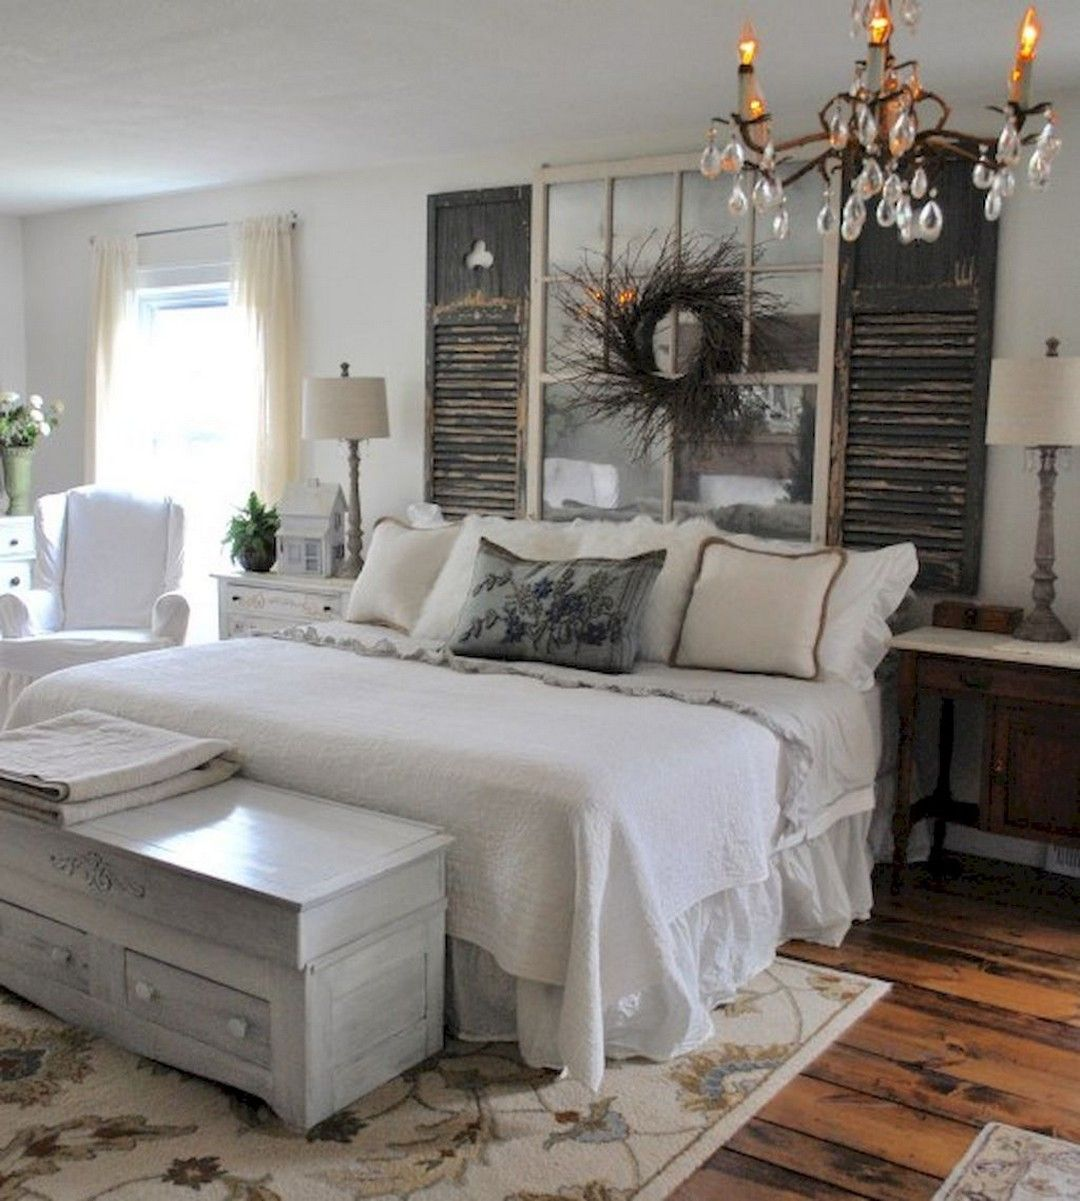 52 Rustic Farmhouse Bedroom Decorating Ideas To Transform